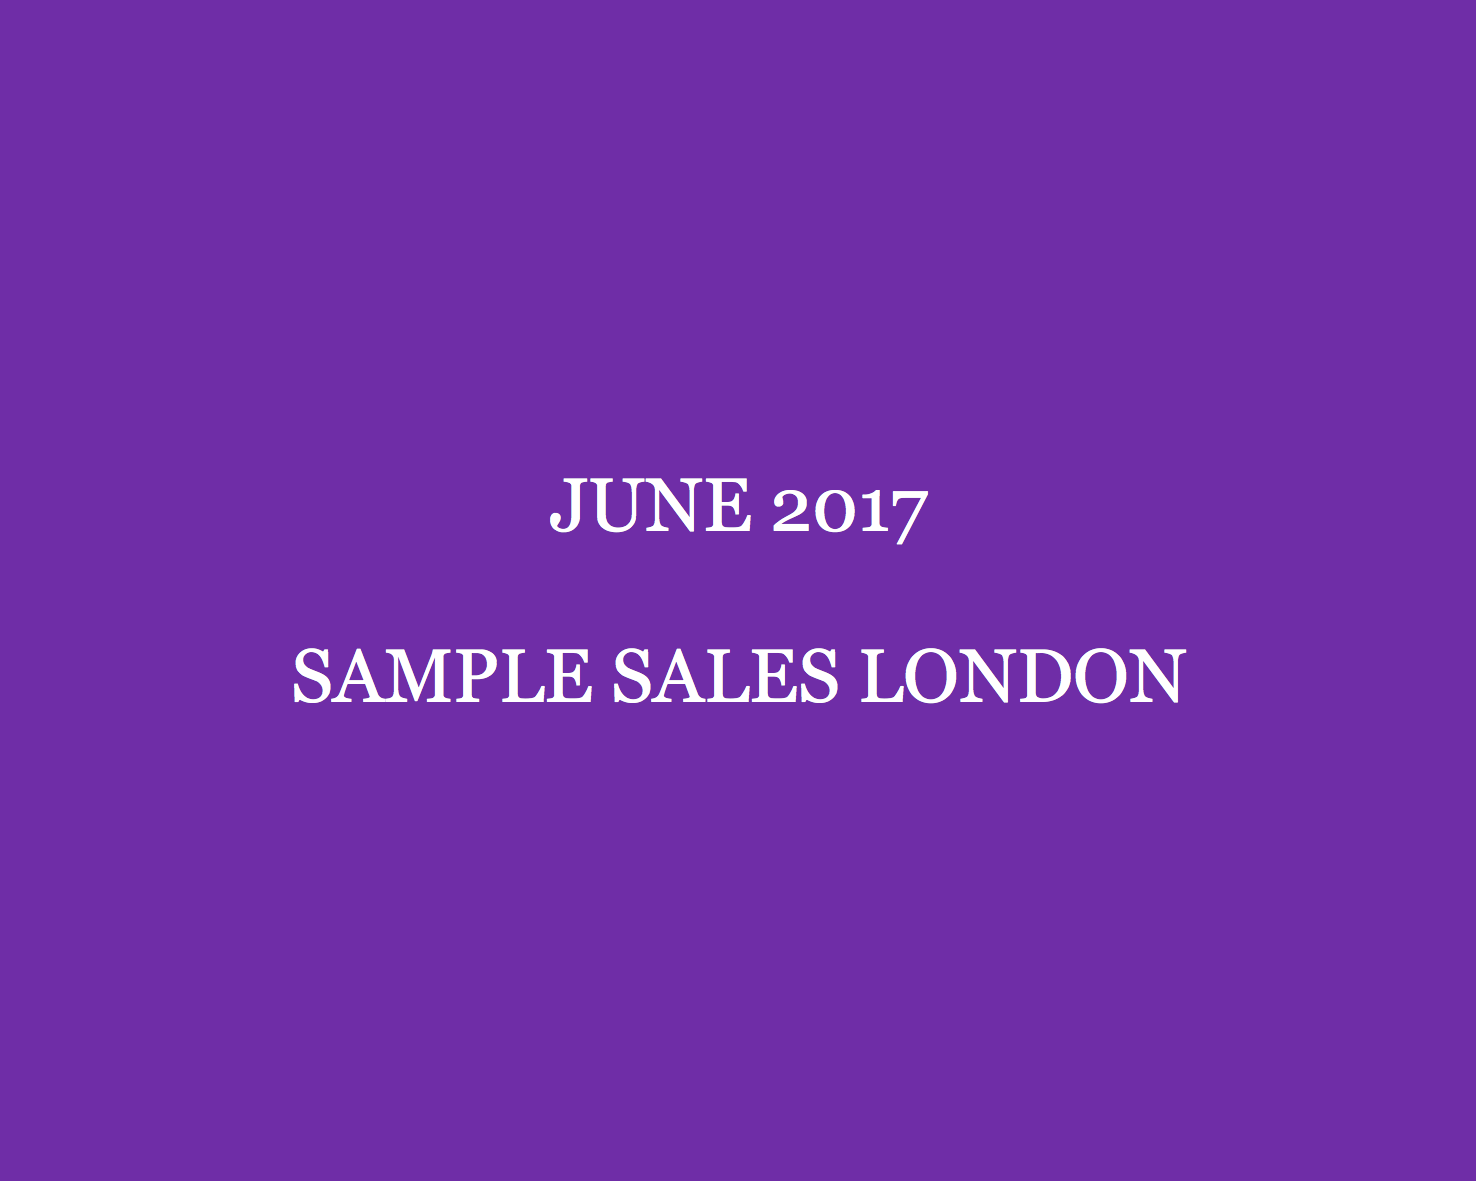 bdc62ce5b61 The June London Sample Sales Guide - Style Barista